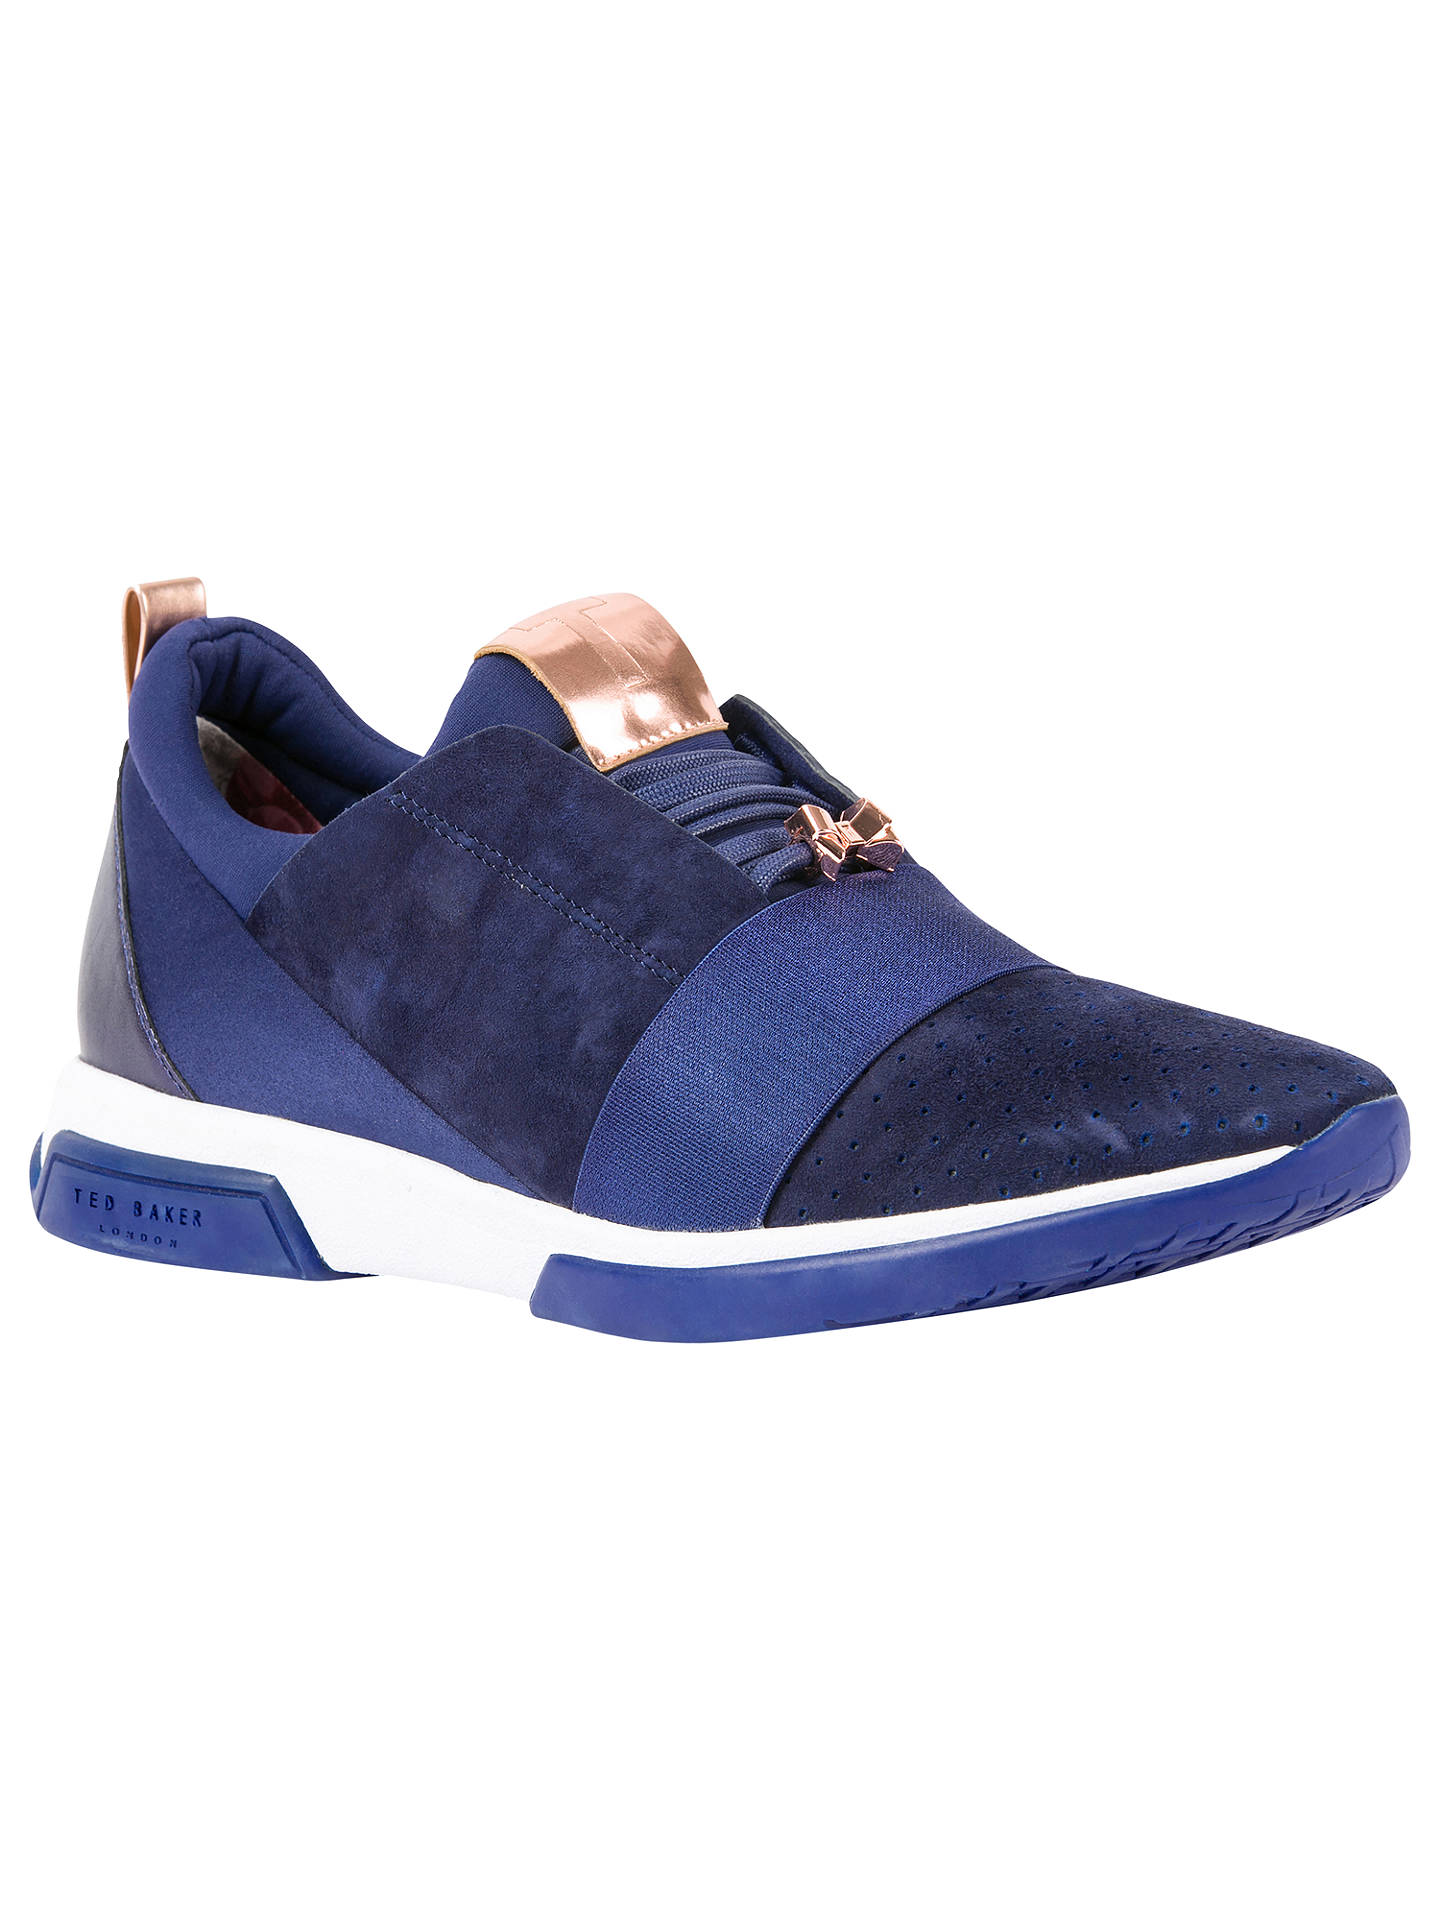 Buy Ted Baker Cepap Lace Up Trainers, Navy Suede, 4 Online at johnlewis.com